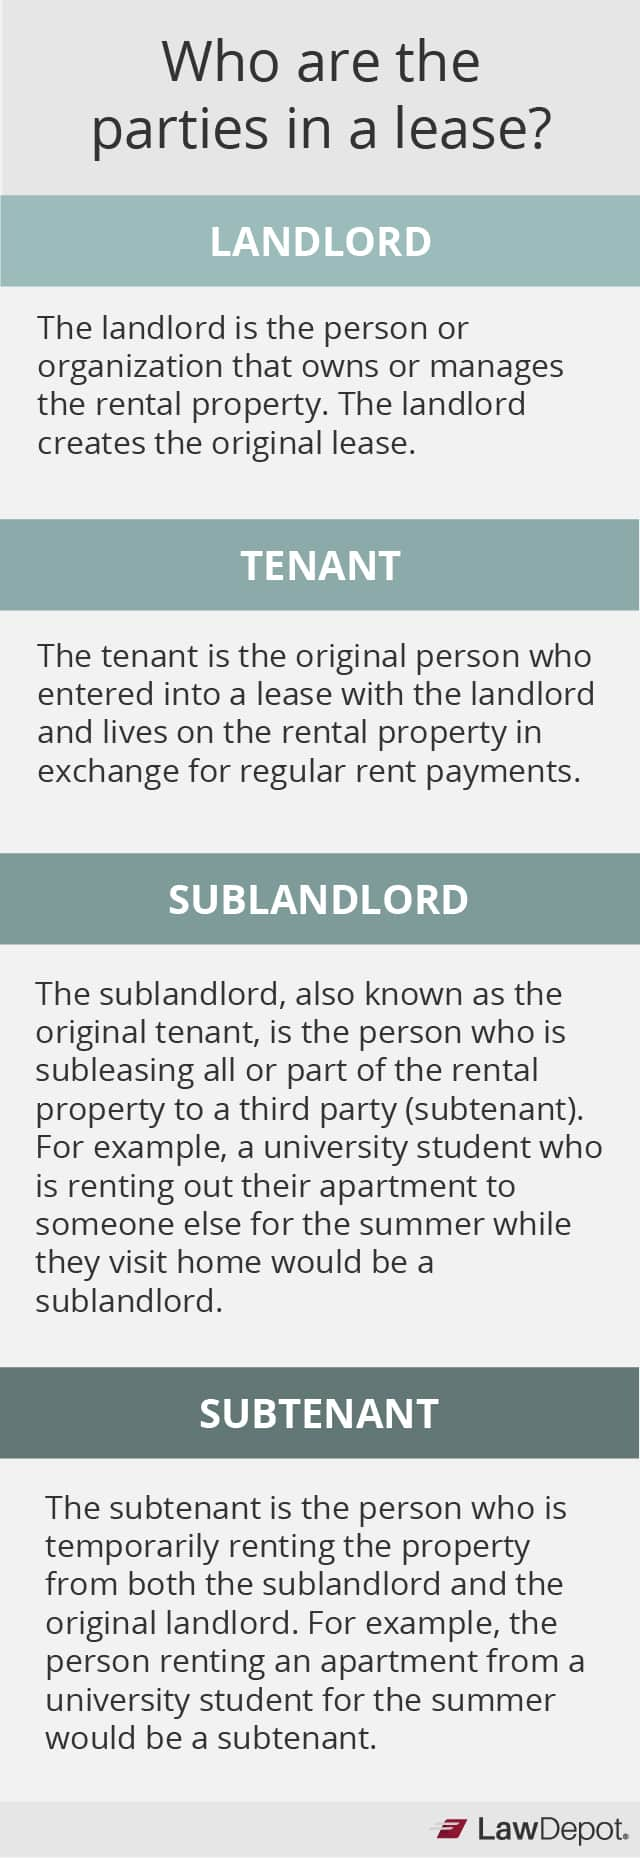 Who are the parties in a lease?